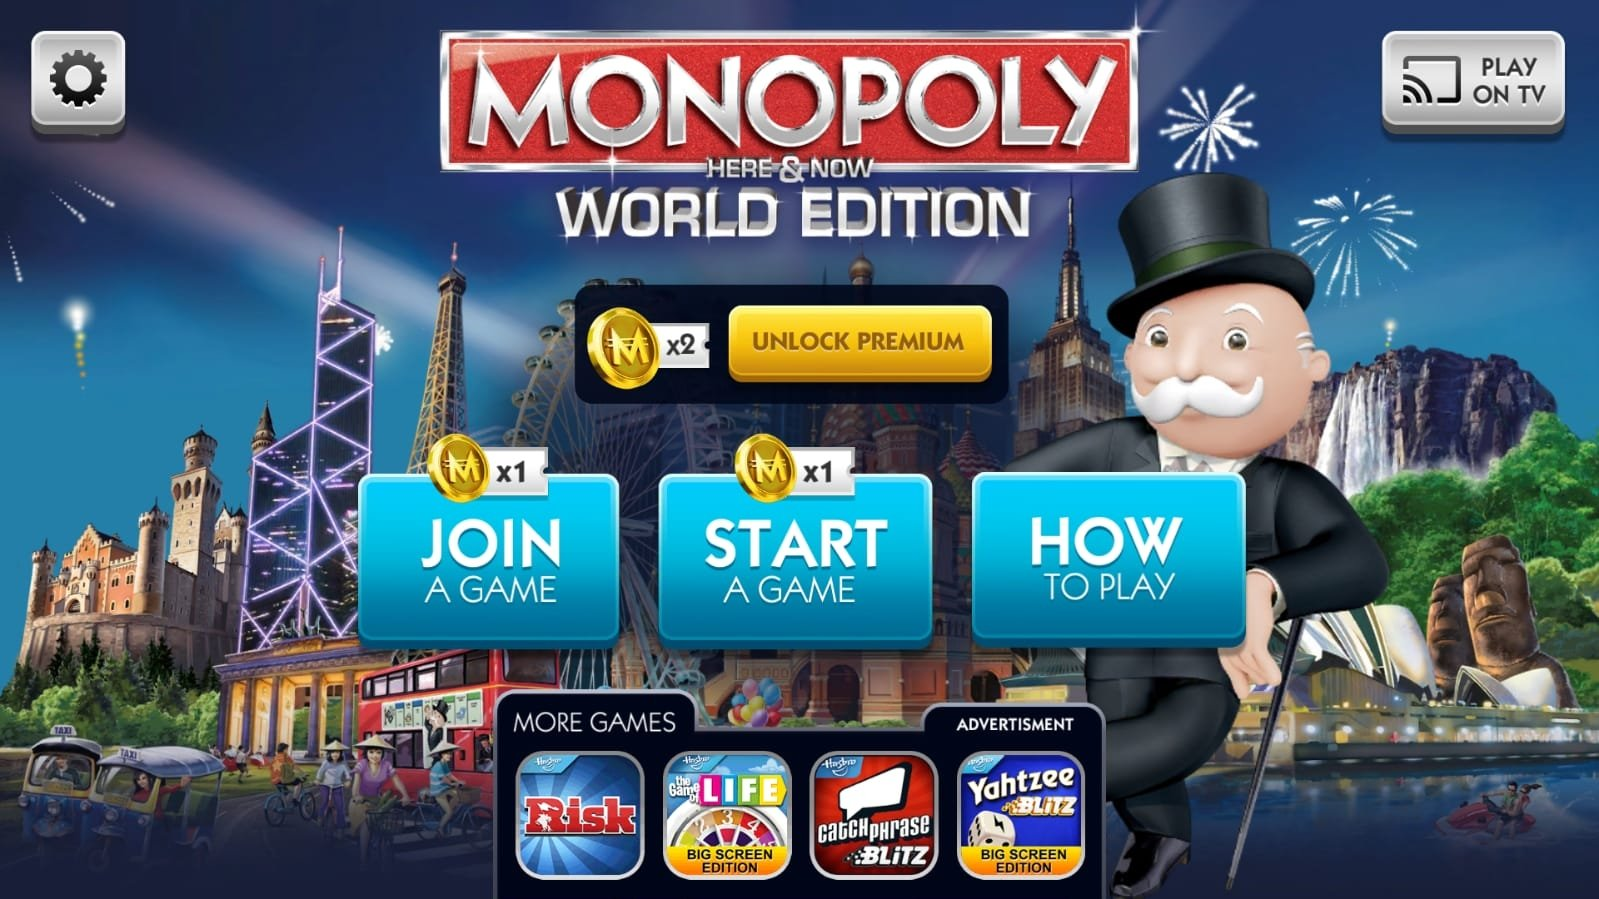 MONOPOLY Android image 7